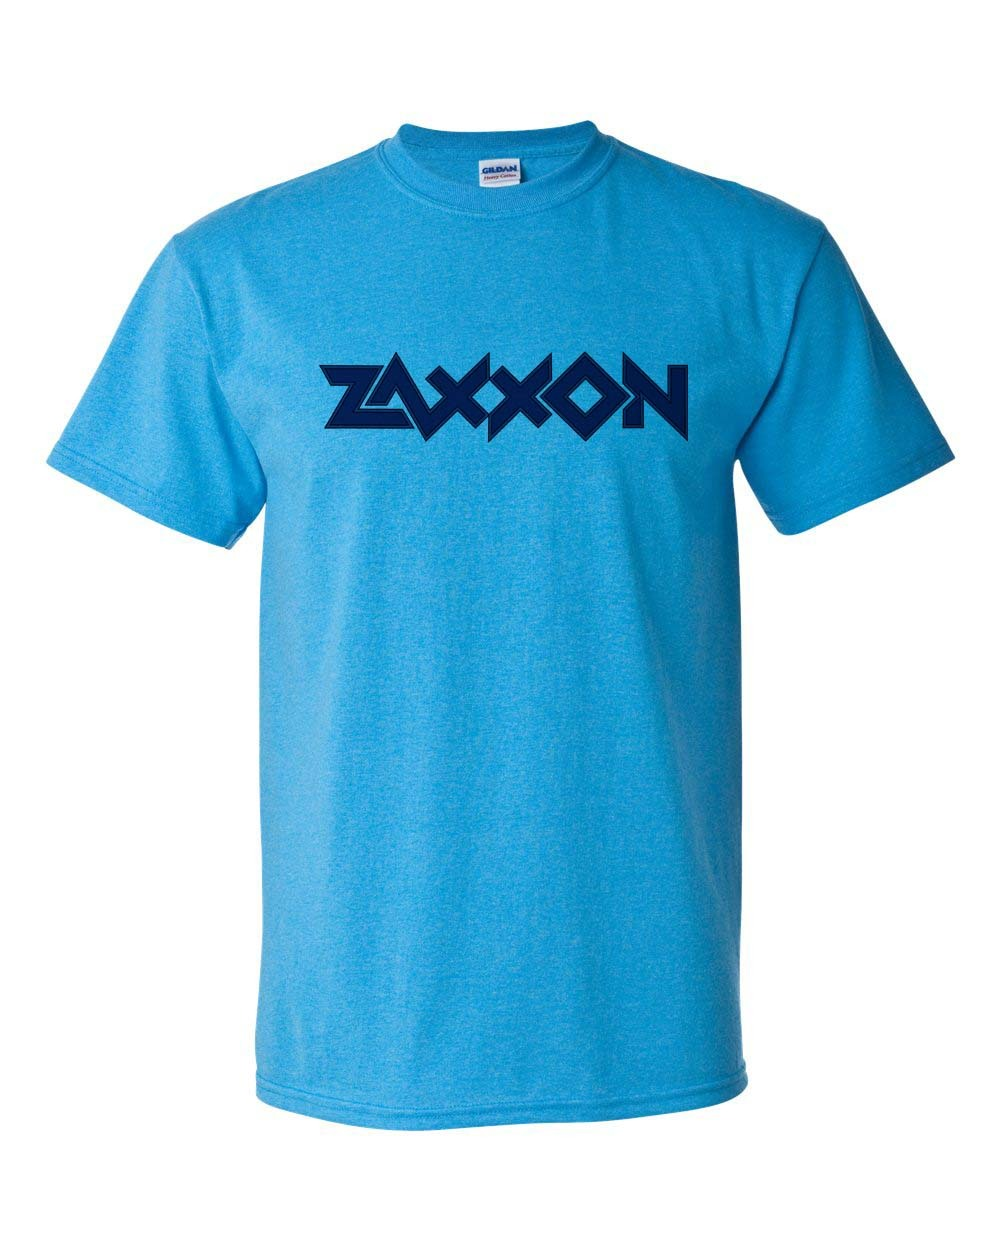 Zaxxon heather blue retro distressed